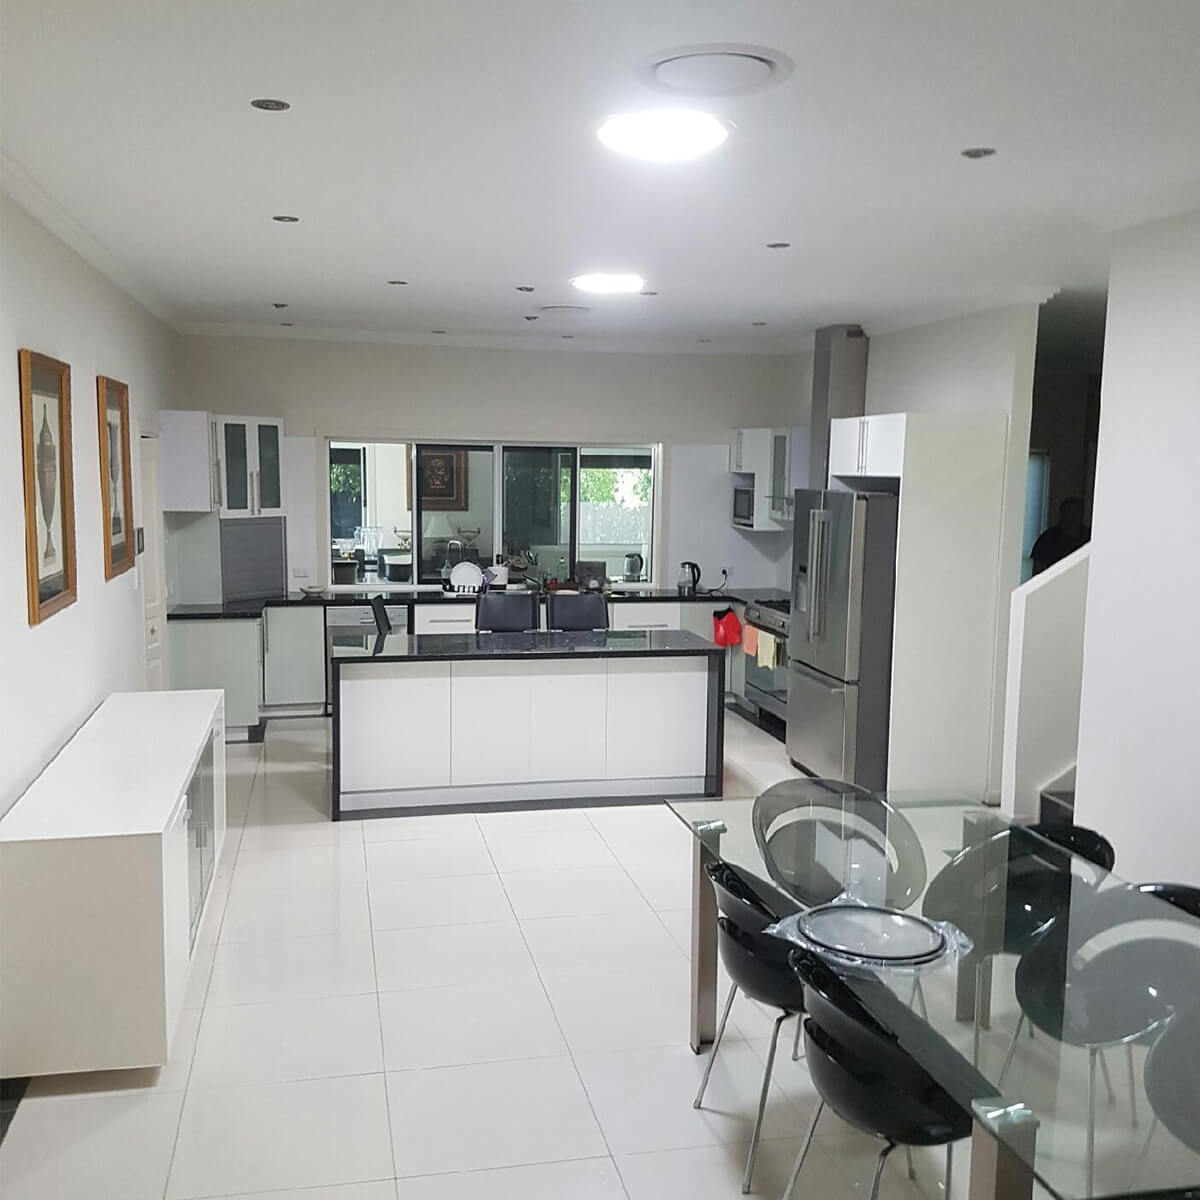 Tube shaped skylights allow brilliant light into a white kitchen with a glass table.